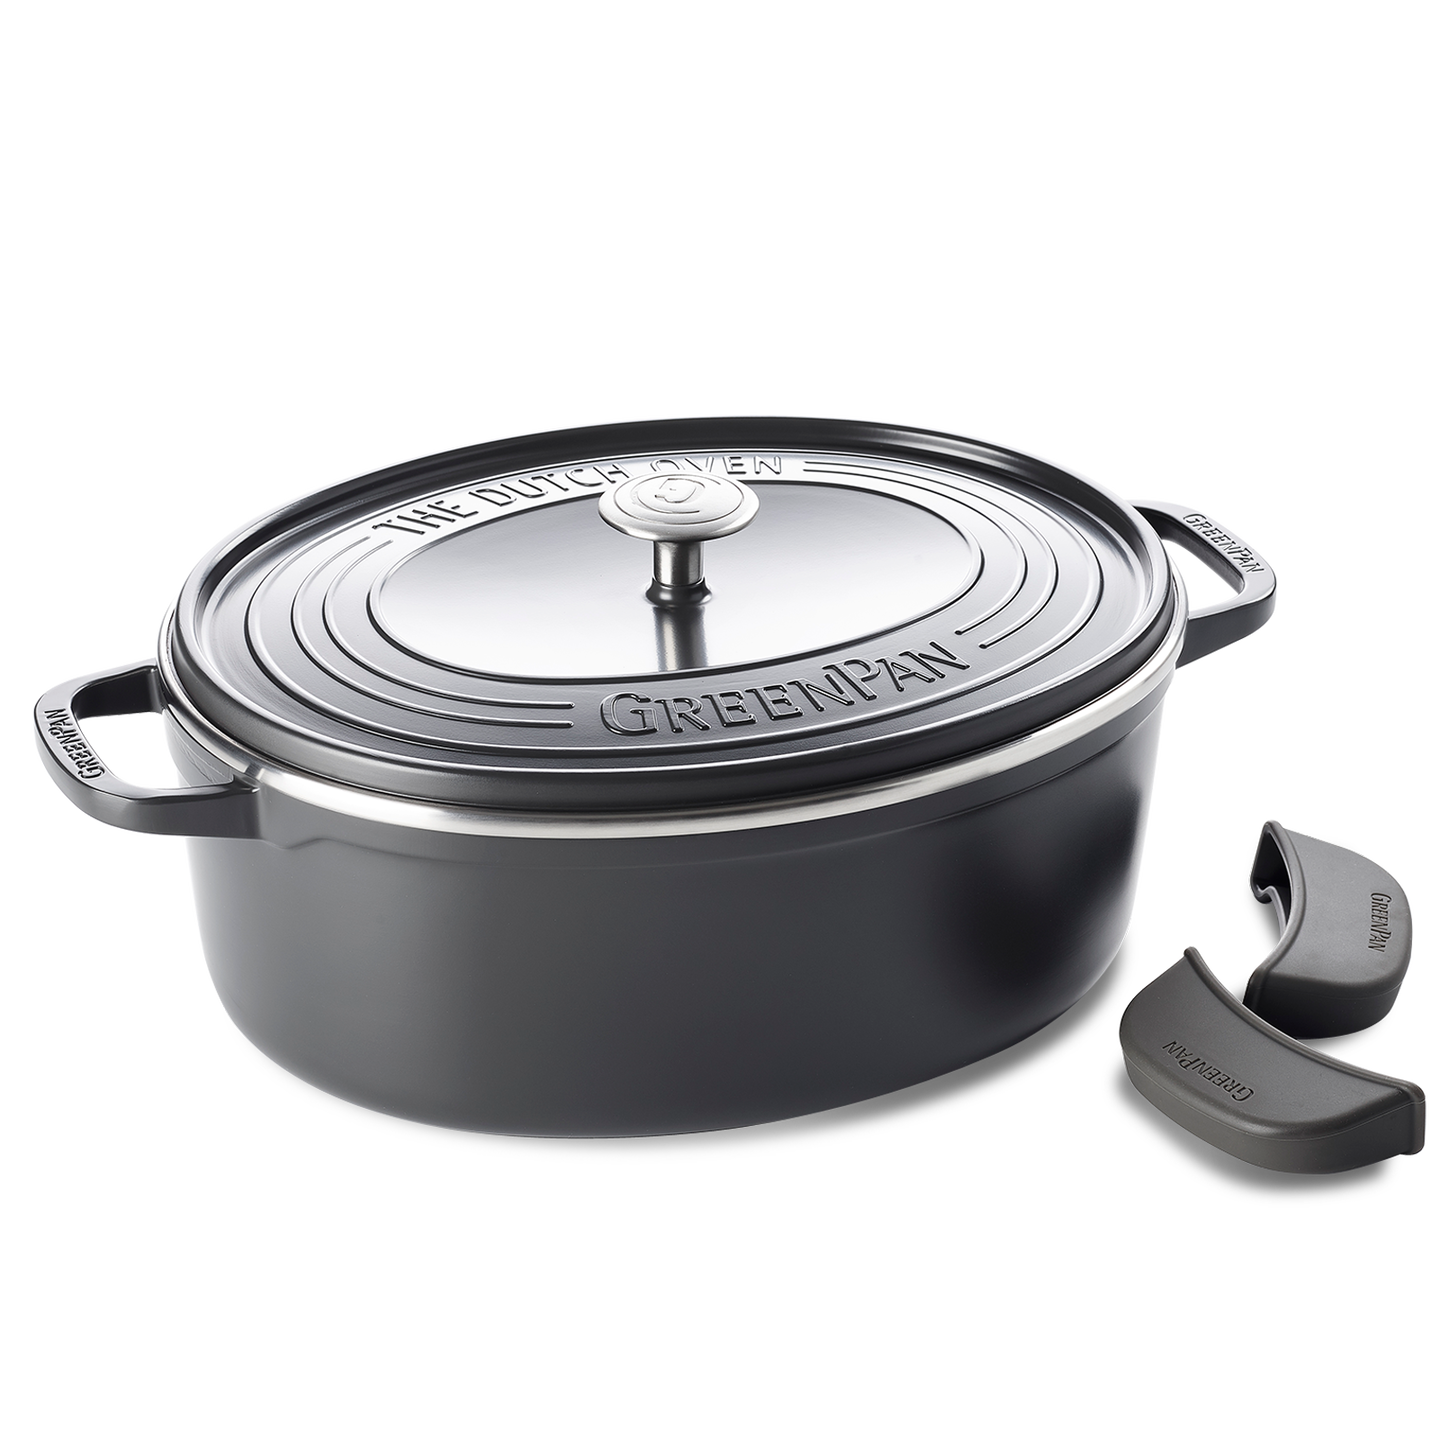 Featherweights Keramisk Oval Non-Stick Dutch Oven med lock